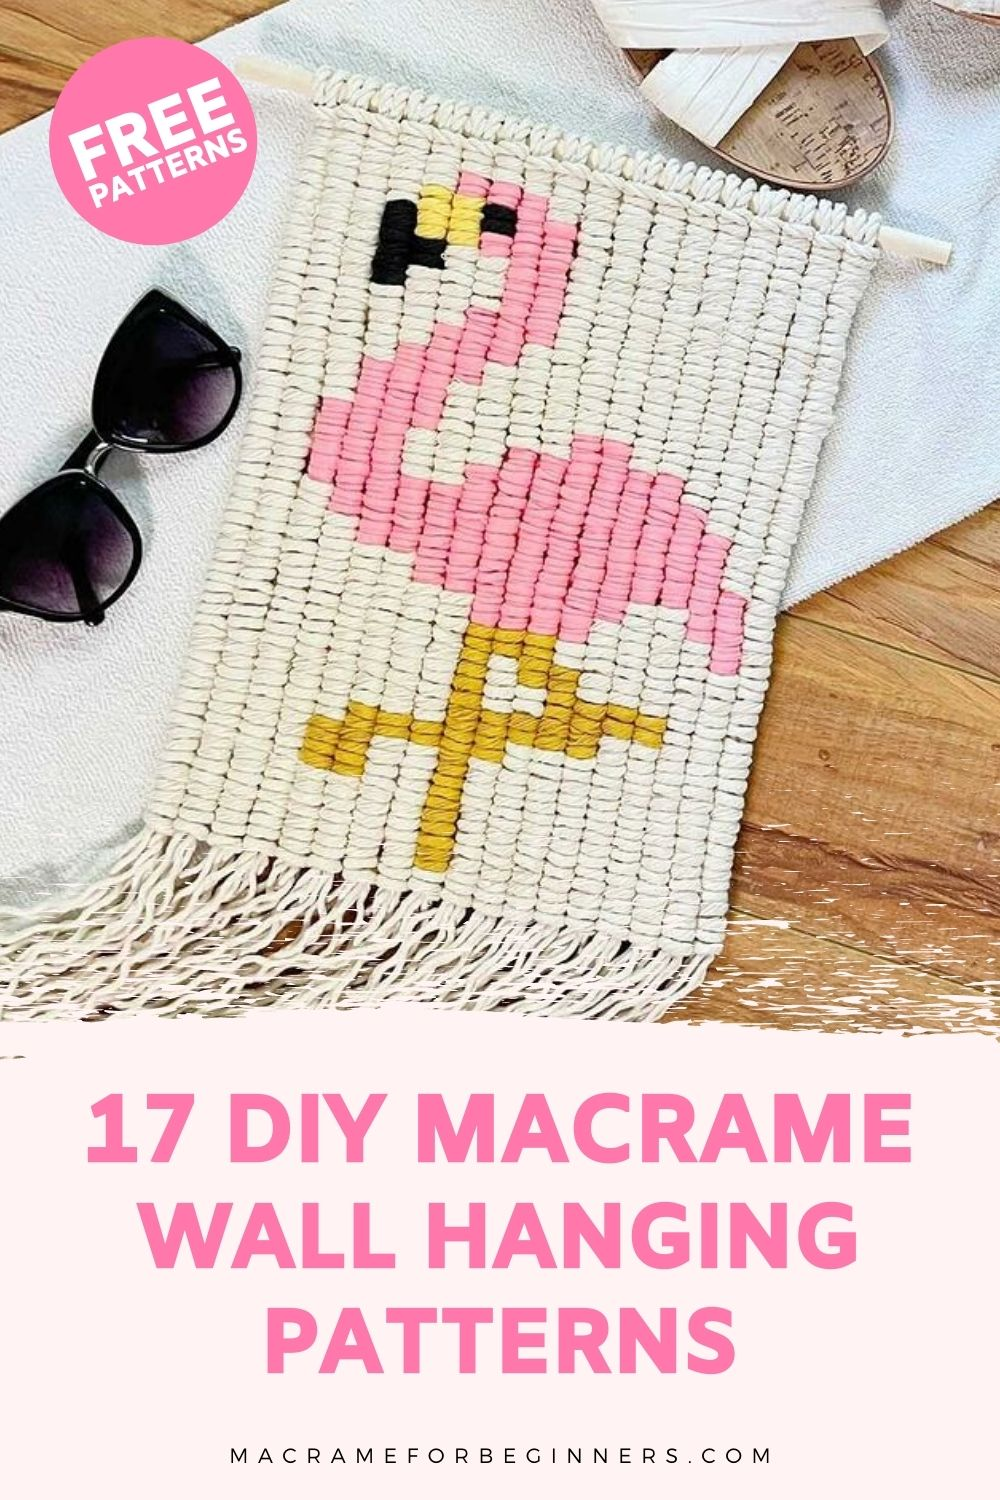 17 FREE Macrame Wall Hanging Patterns for Beginners